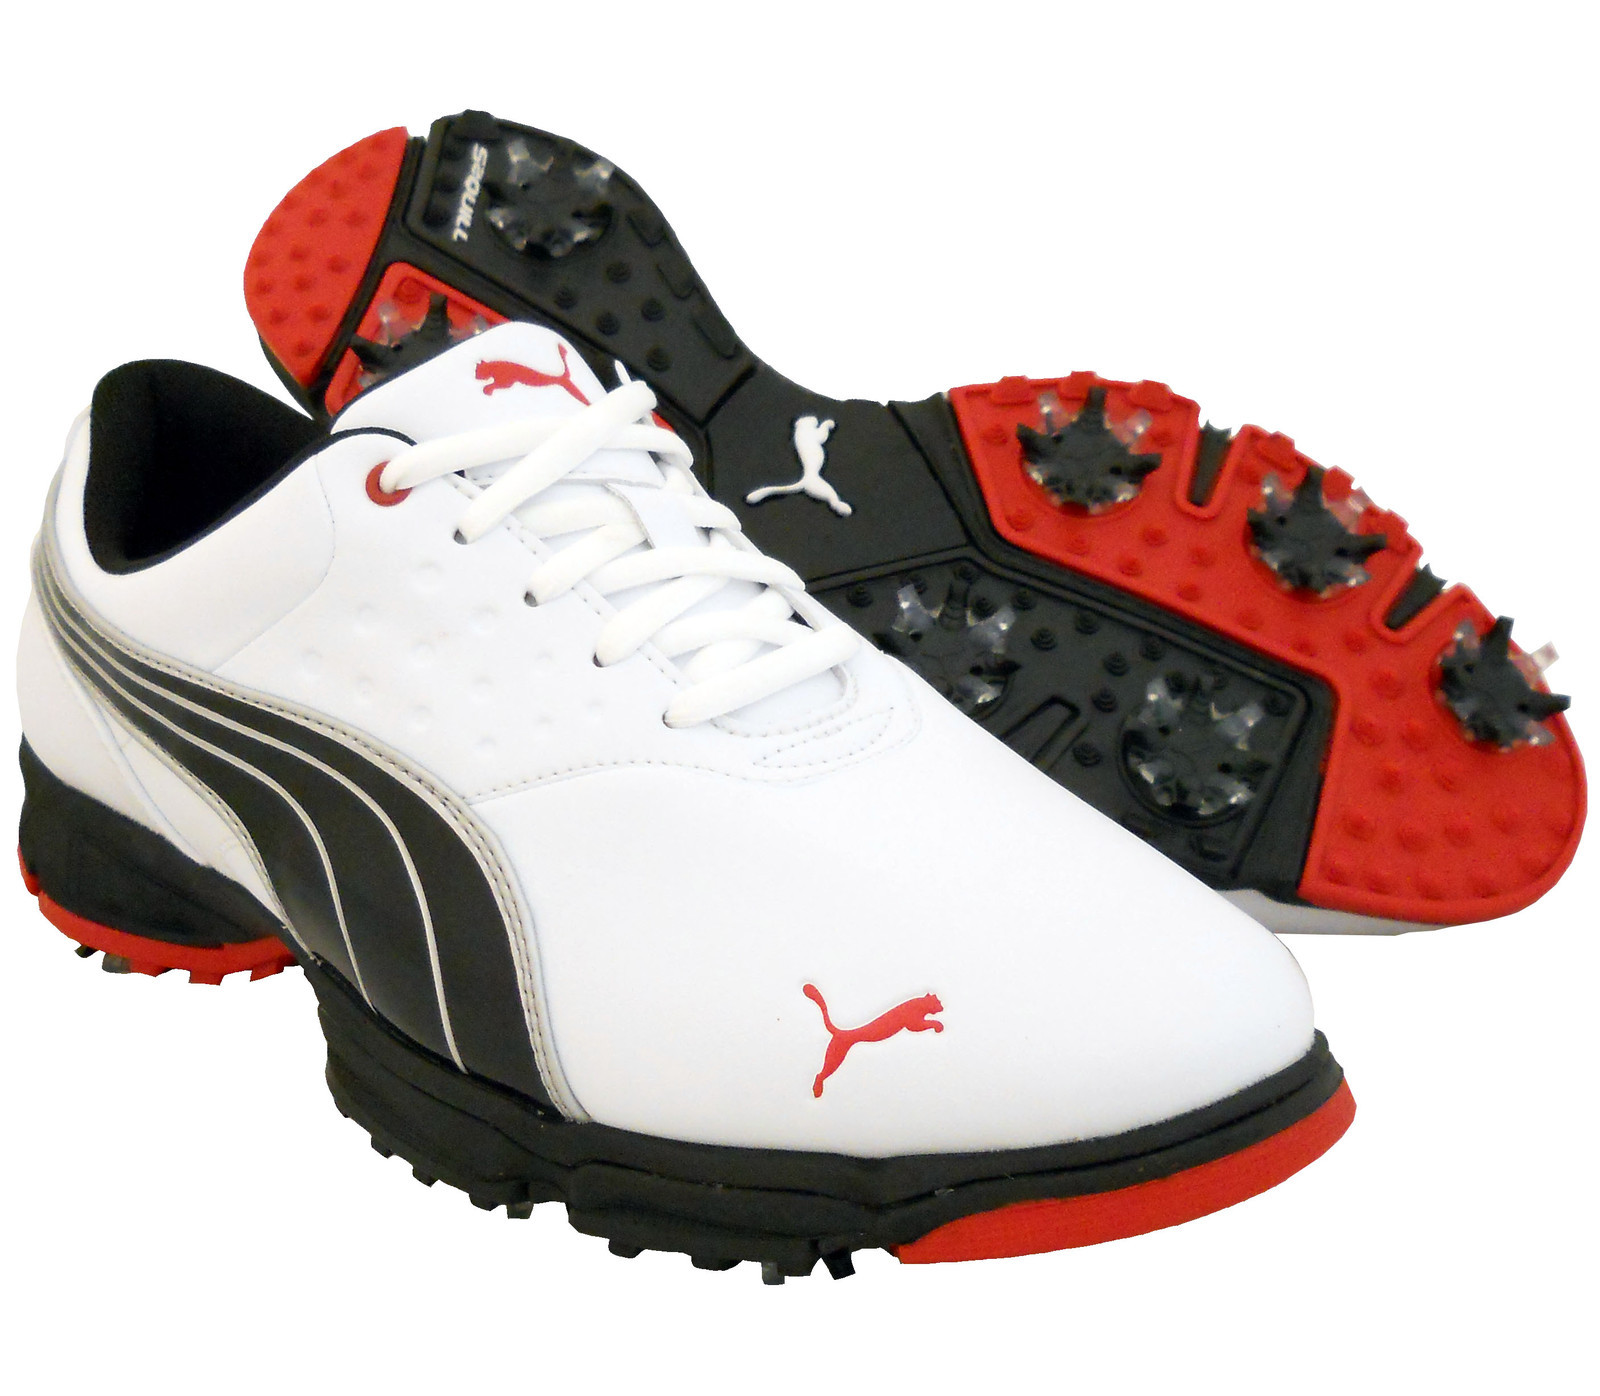 Puma Amp Sport Men's Golf Shoes (Medium) NEW at Sears.com